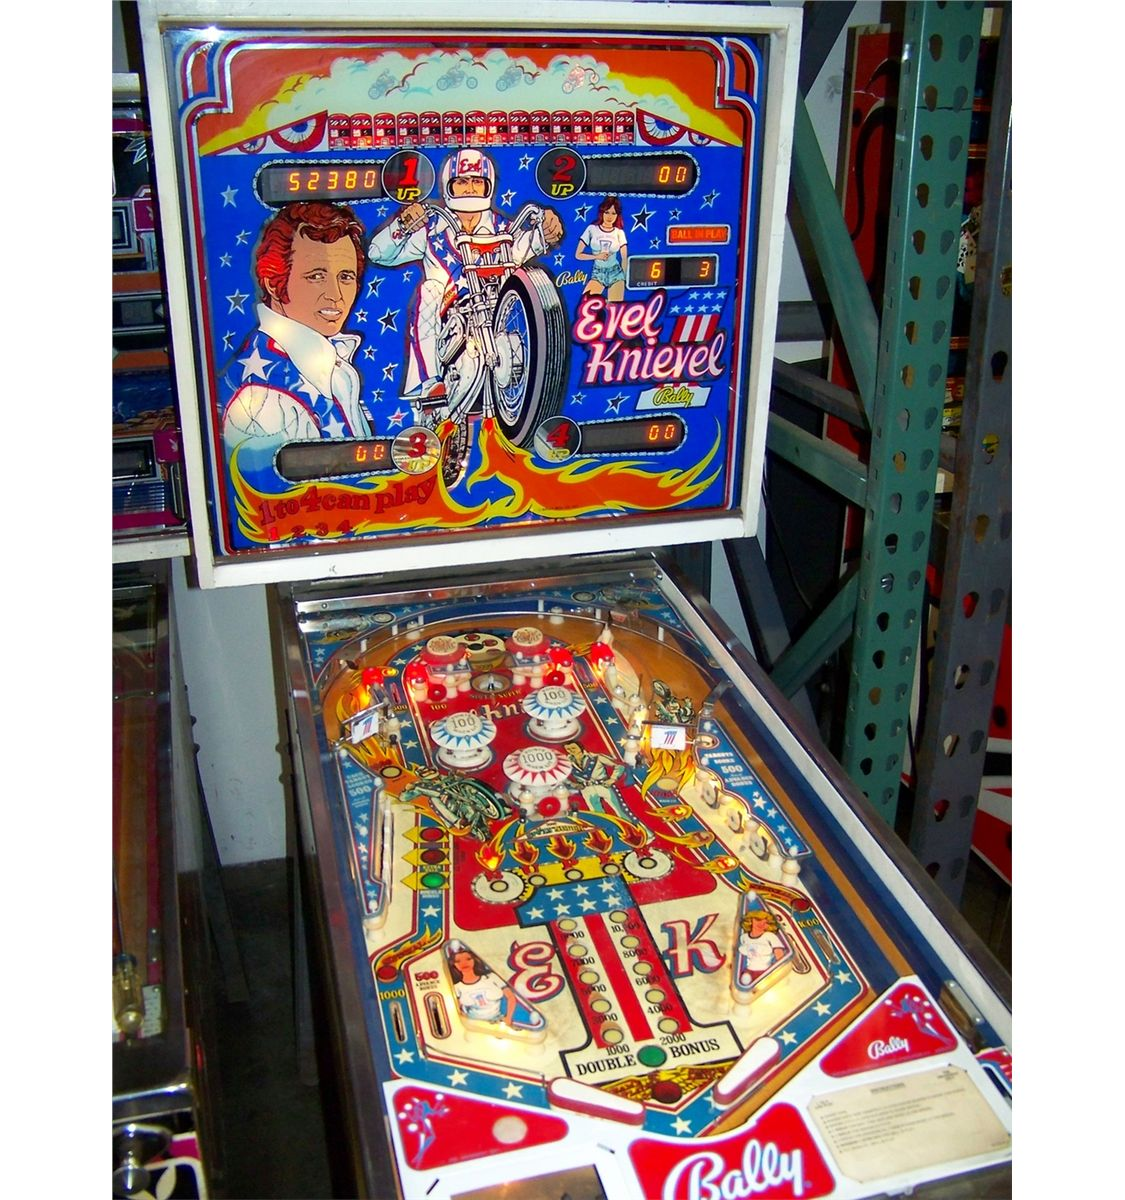 Evel knievel slot machine for sale